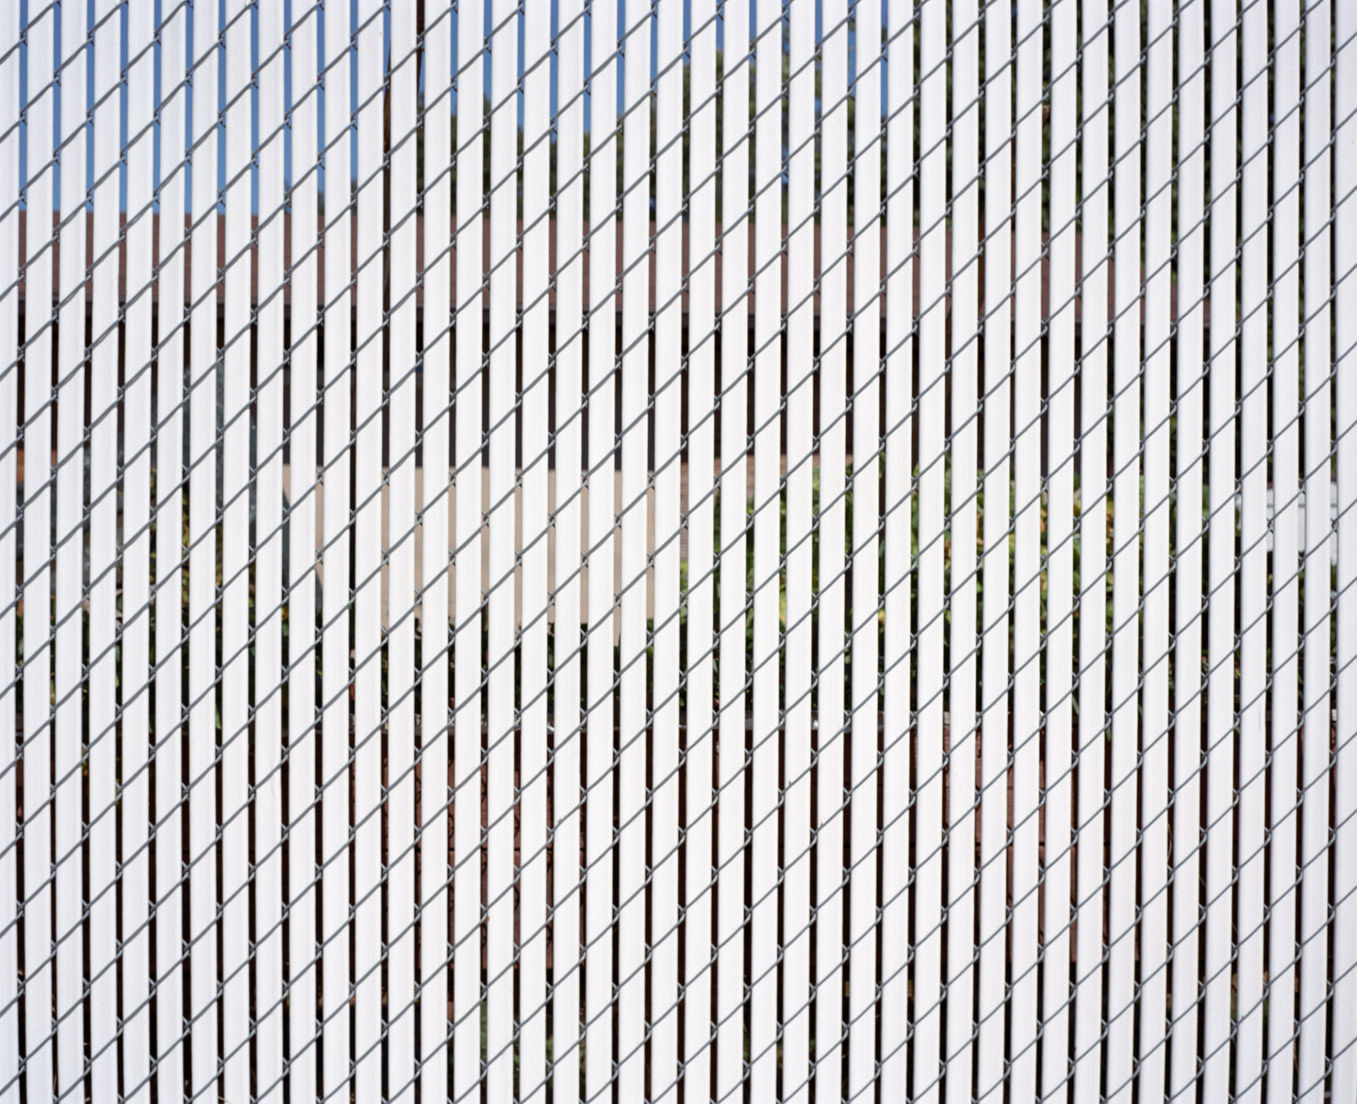 Scrim, Oregon, USA, 2016